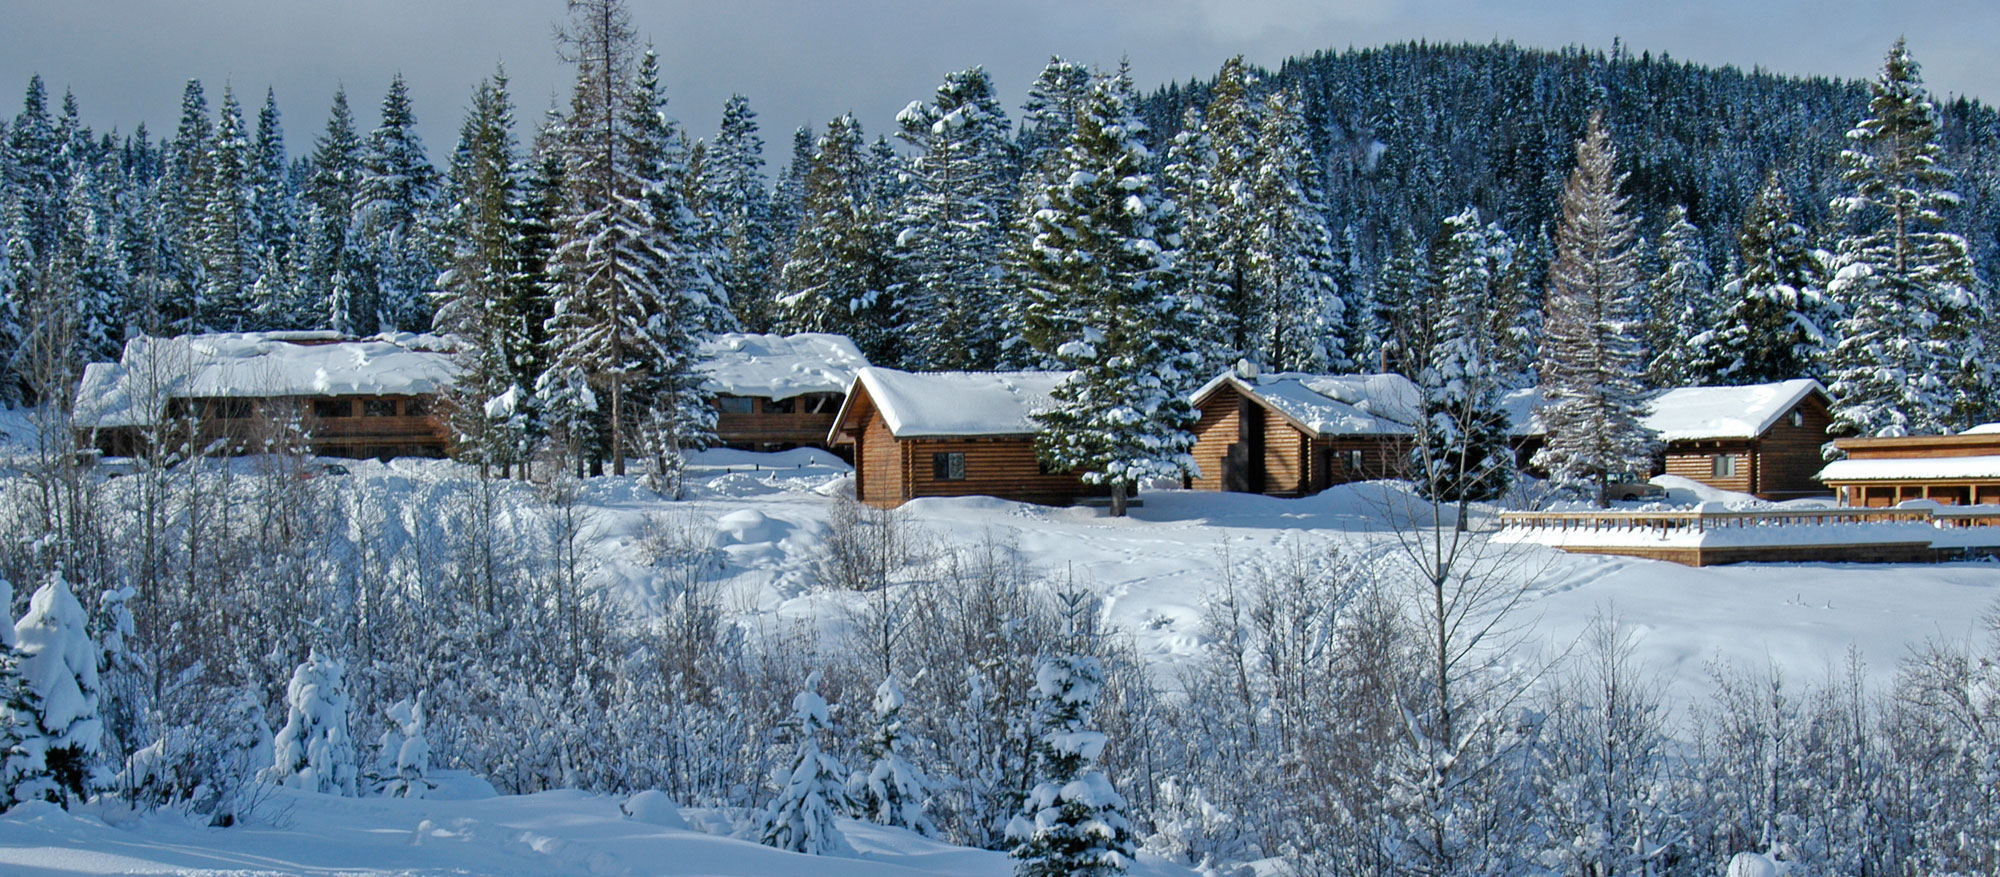 Cooper Spur Lodging Outdoors Snow